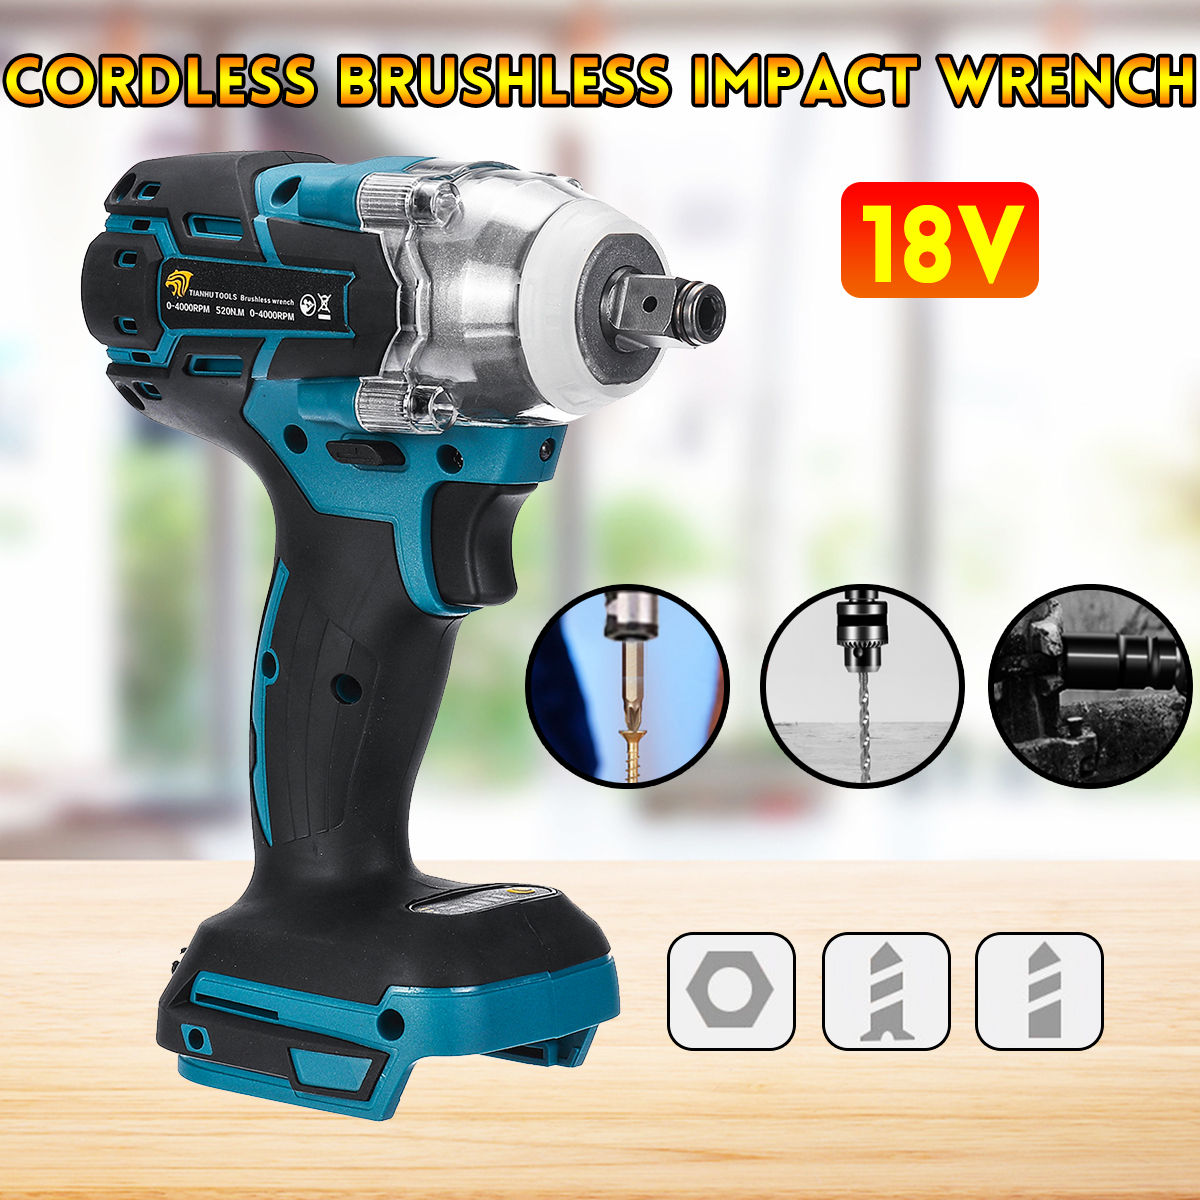 18V Electric Brushless Impact Wrench Rechargeable 1/2 Socket Wrench Power Tool Cordless Without Battery&accessories